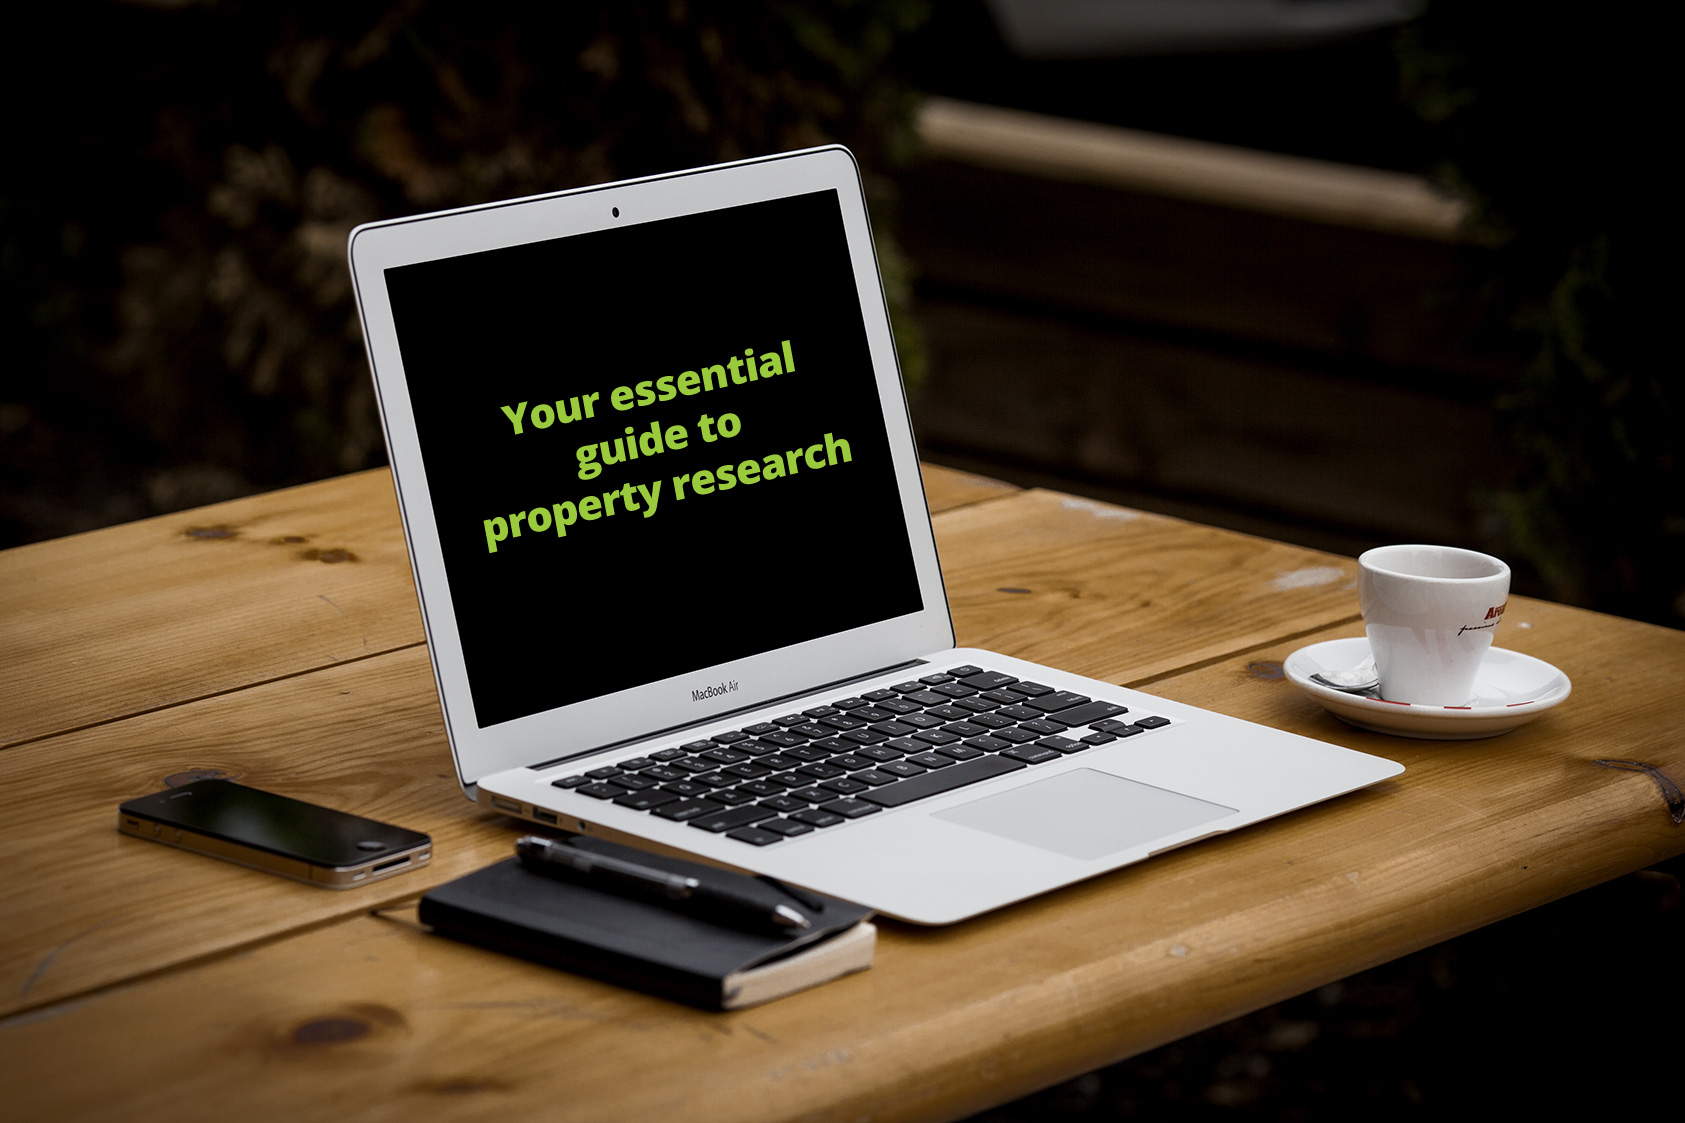 Essential guide to property research